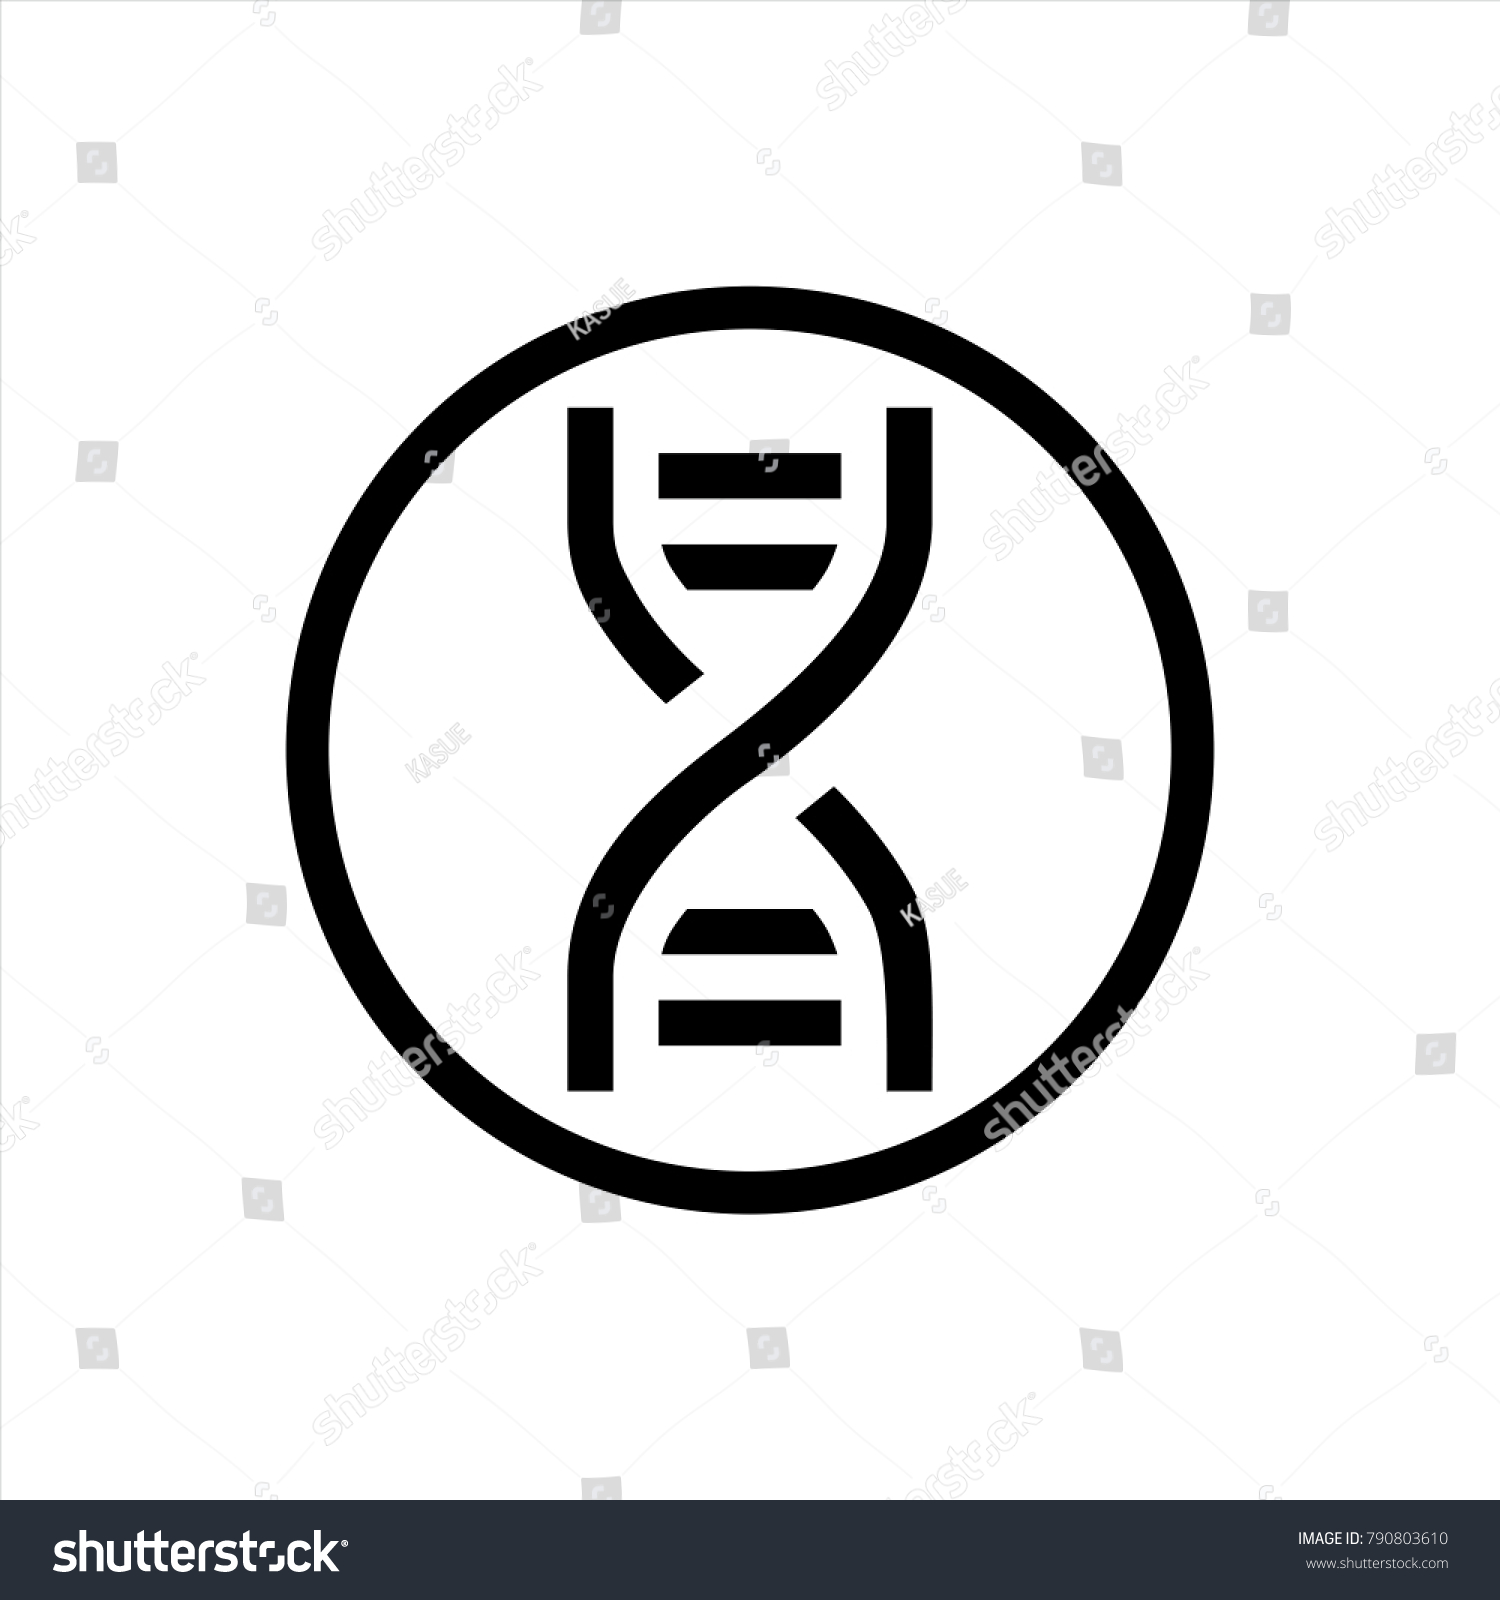 Dna Icon Trendy Flat Style Isolated Stock Vector 2018 790803610